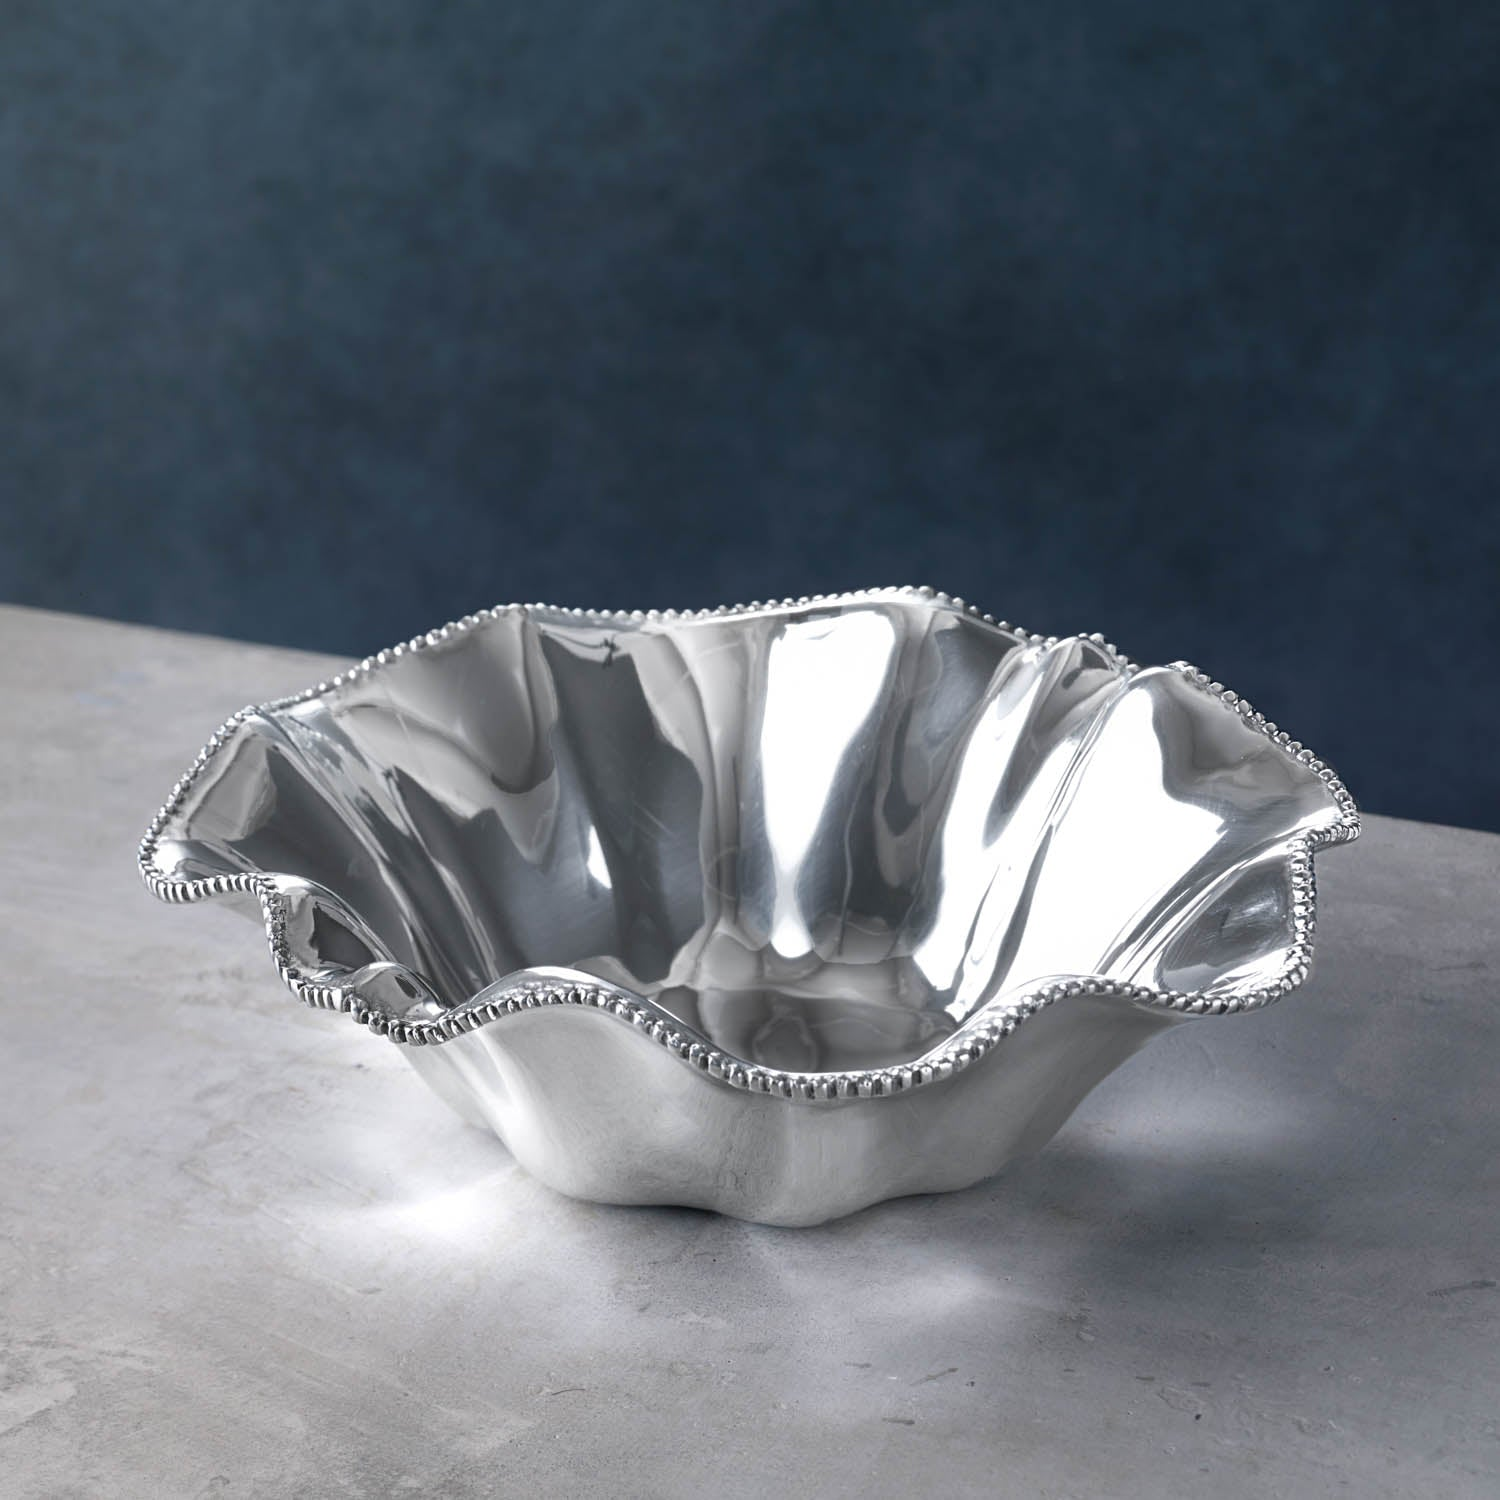 PEARL Denisse Medium Bowl  - Medium